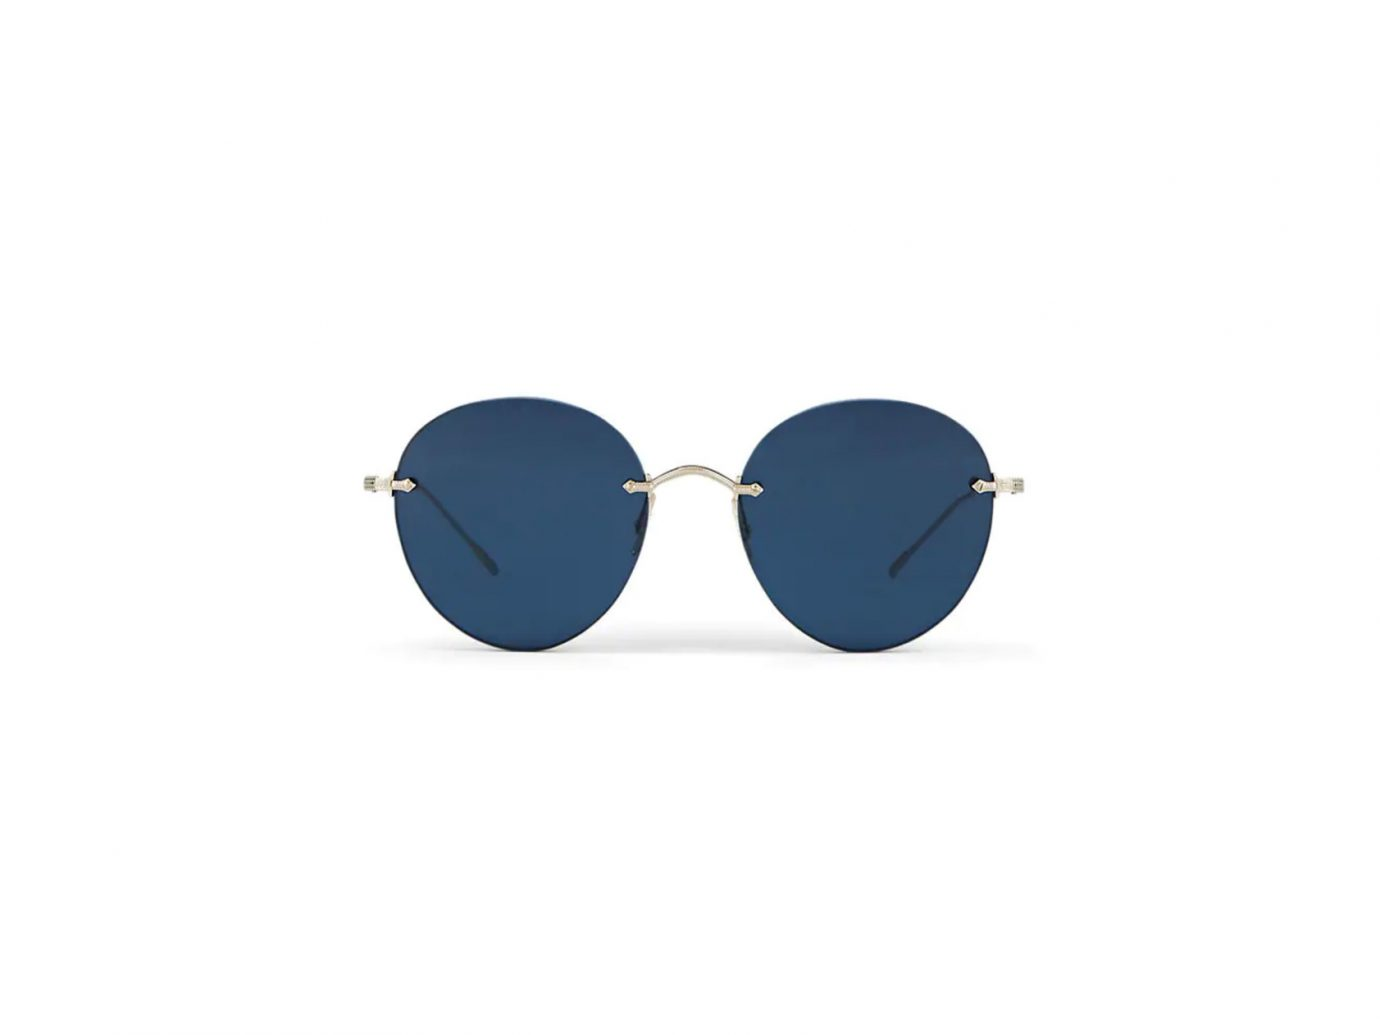 Oliver Peoples Coliena Sunglasses